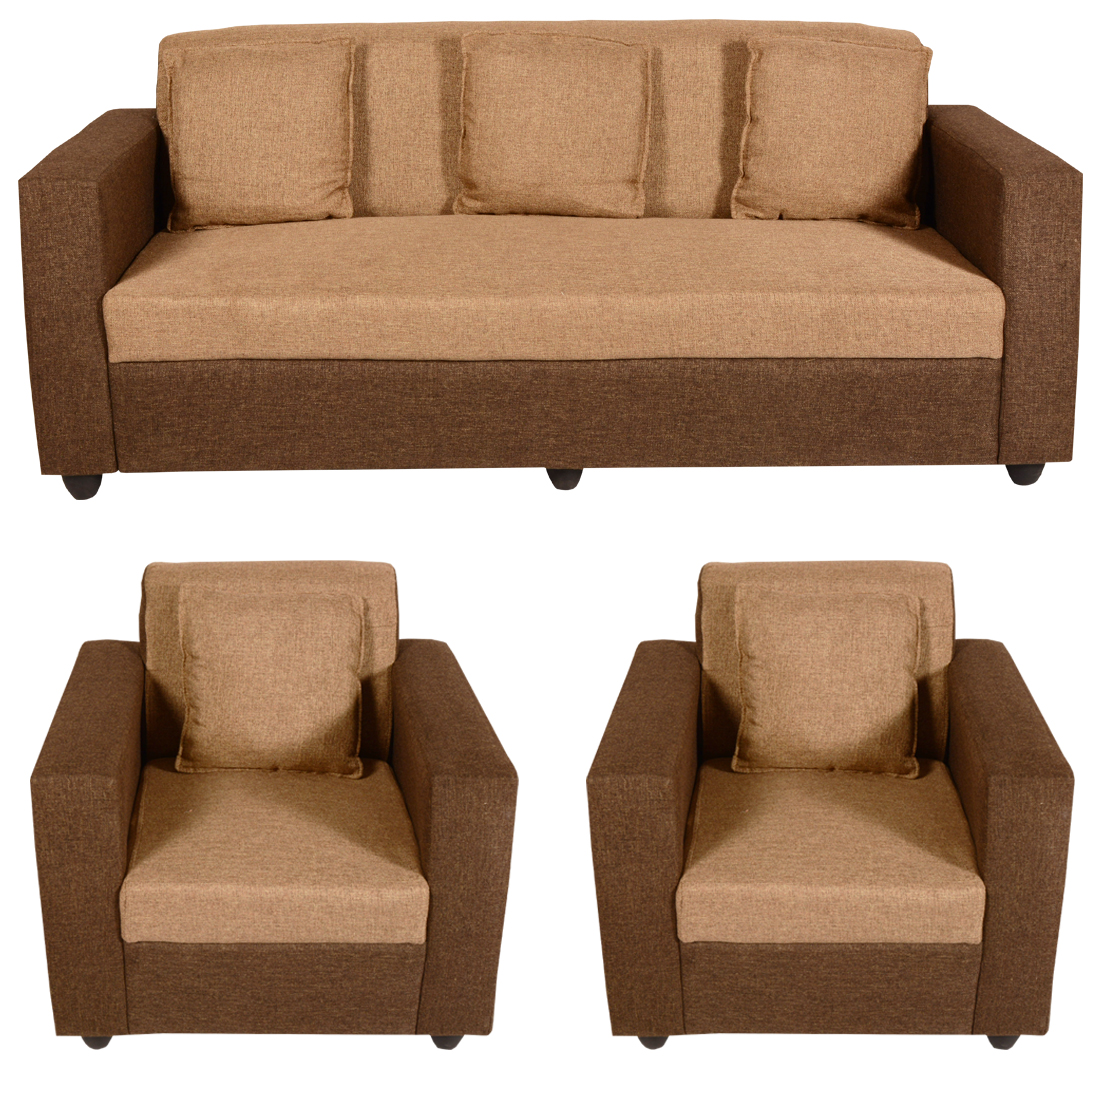 Groovy Bharat Lifestyle Lexus Fabric 3 1 1 Golden Brown Sofa Set Cjindustries Chair Design For Home Cjindustriesco